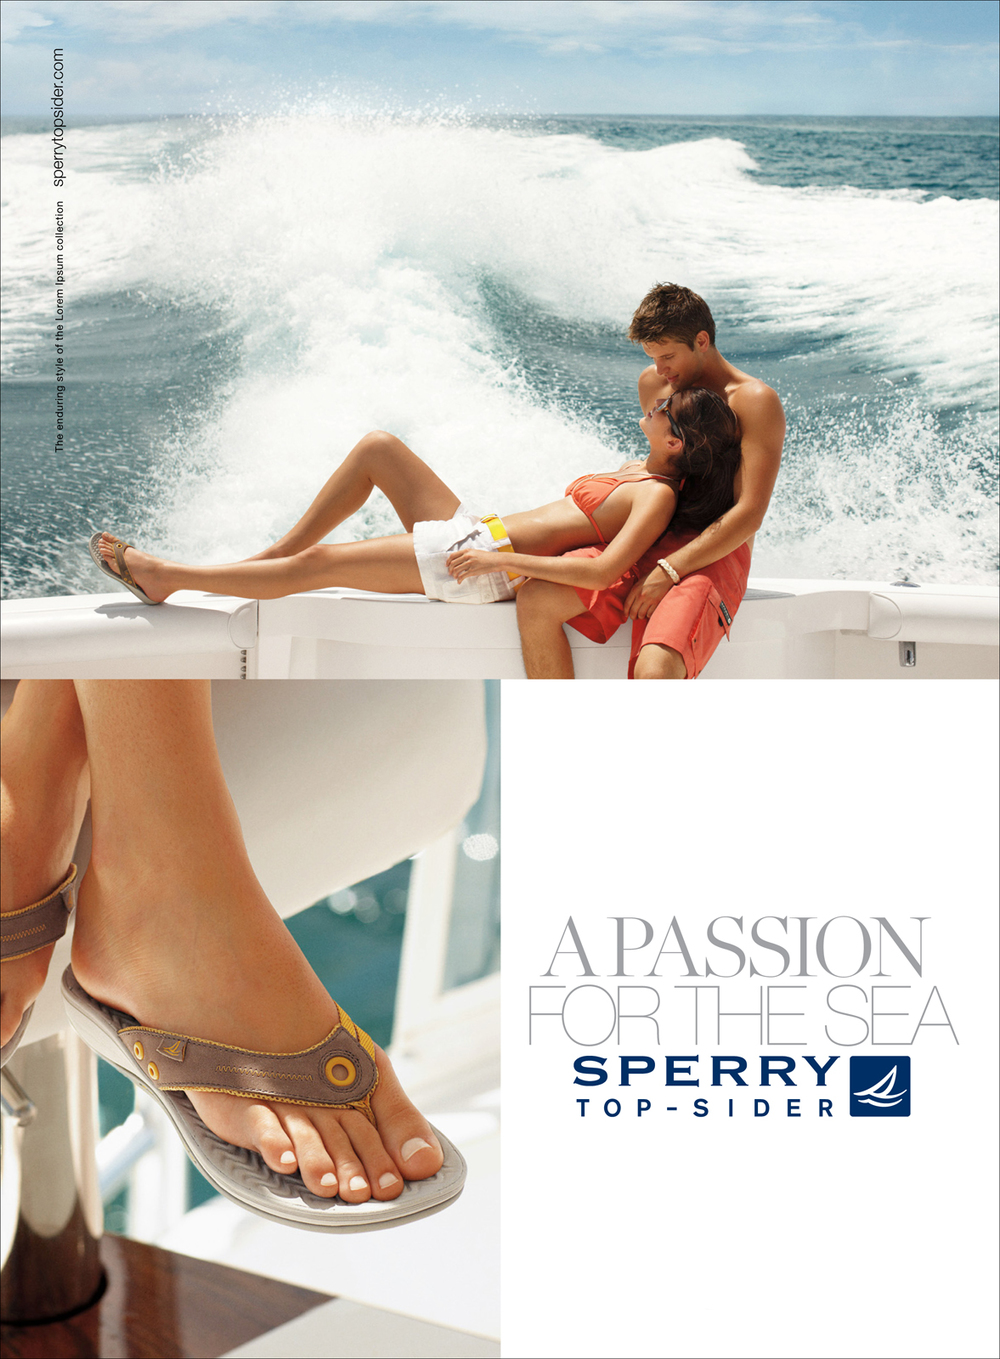 SC_ADVERTISING_SPERRY_KEYS_SS_2010_15.jpg